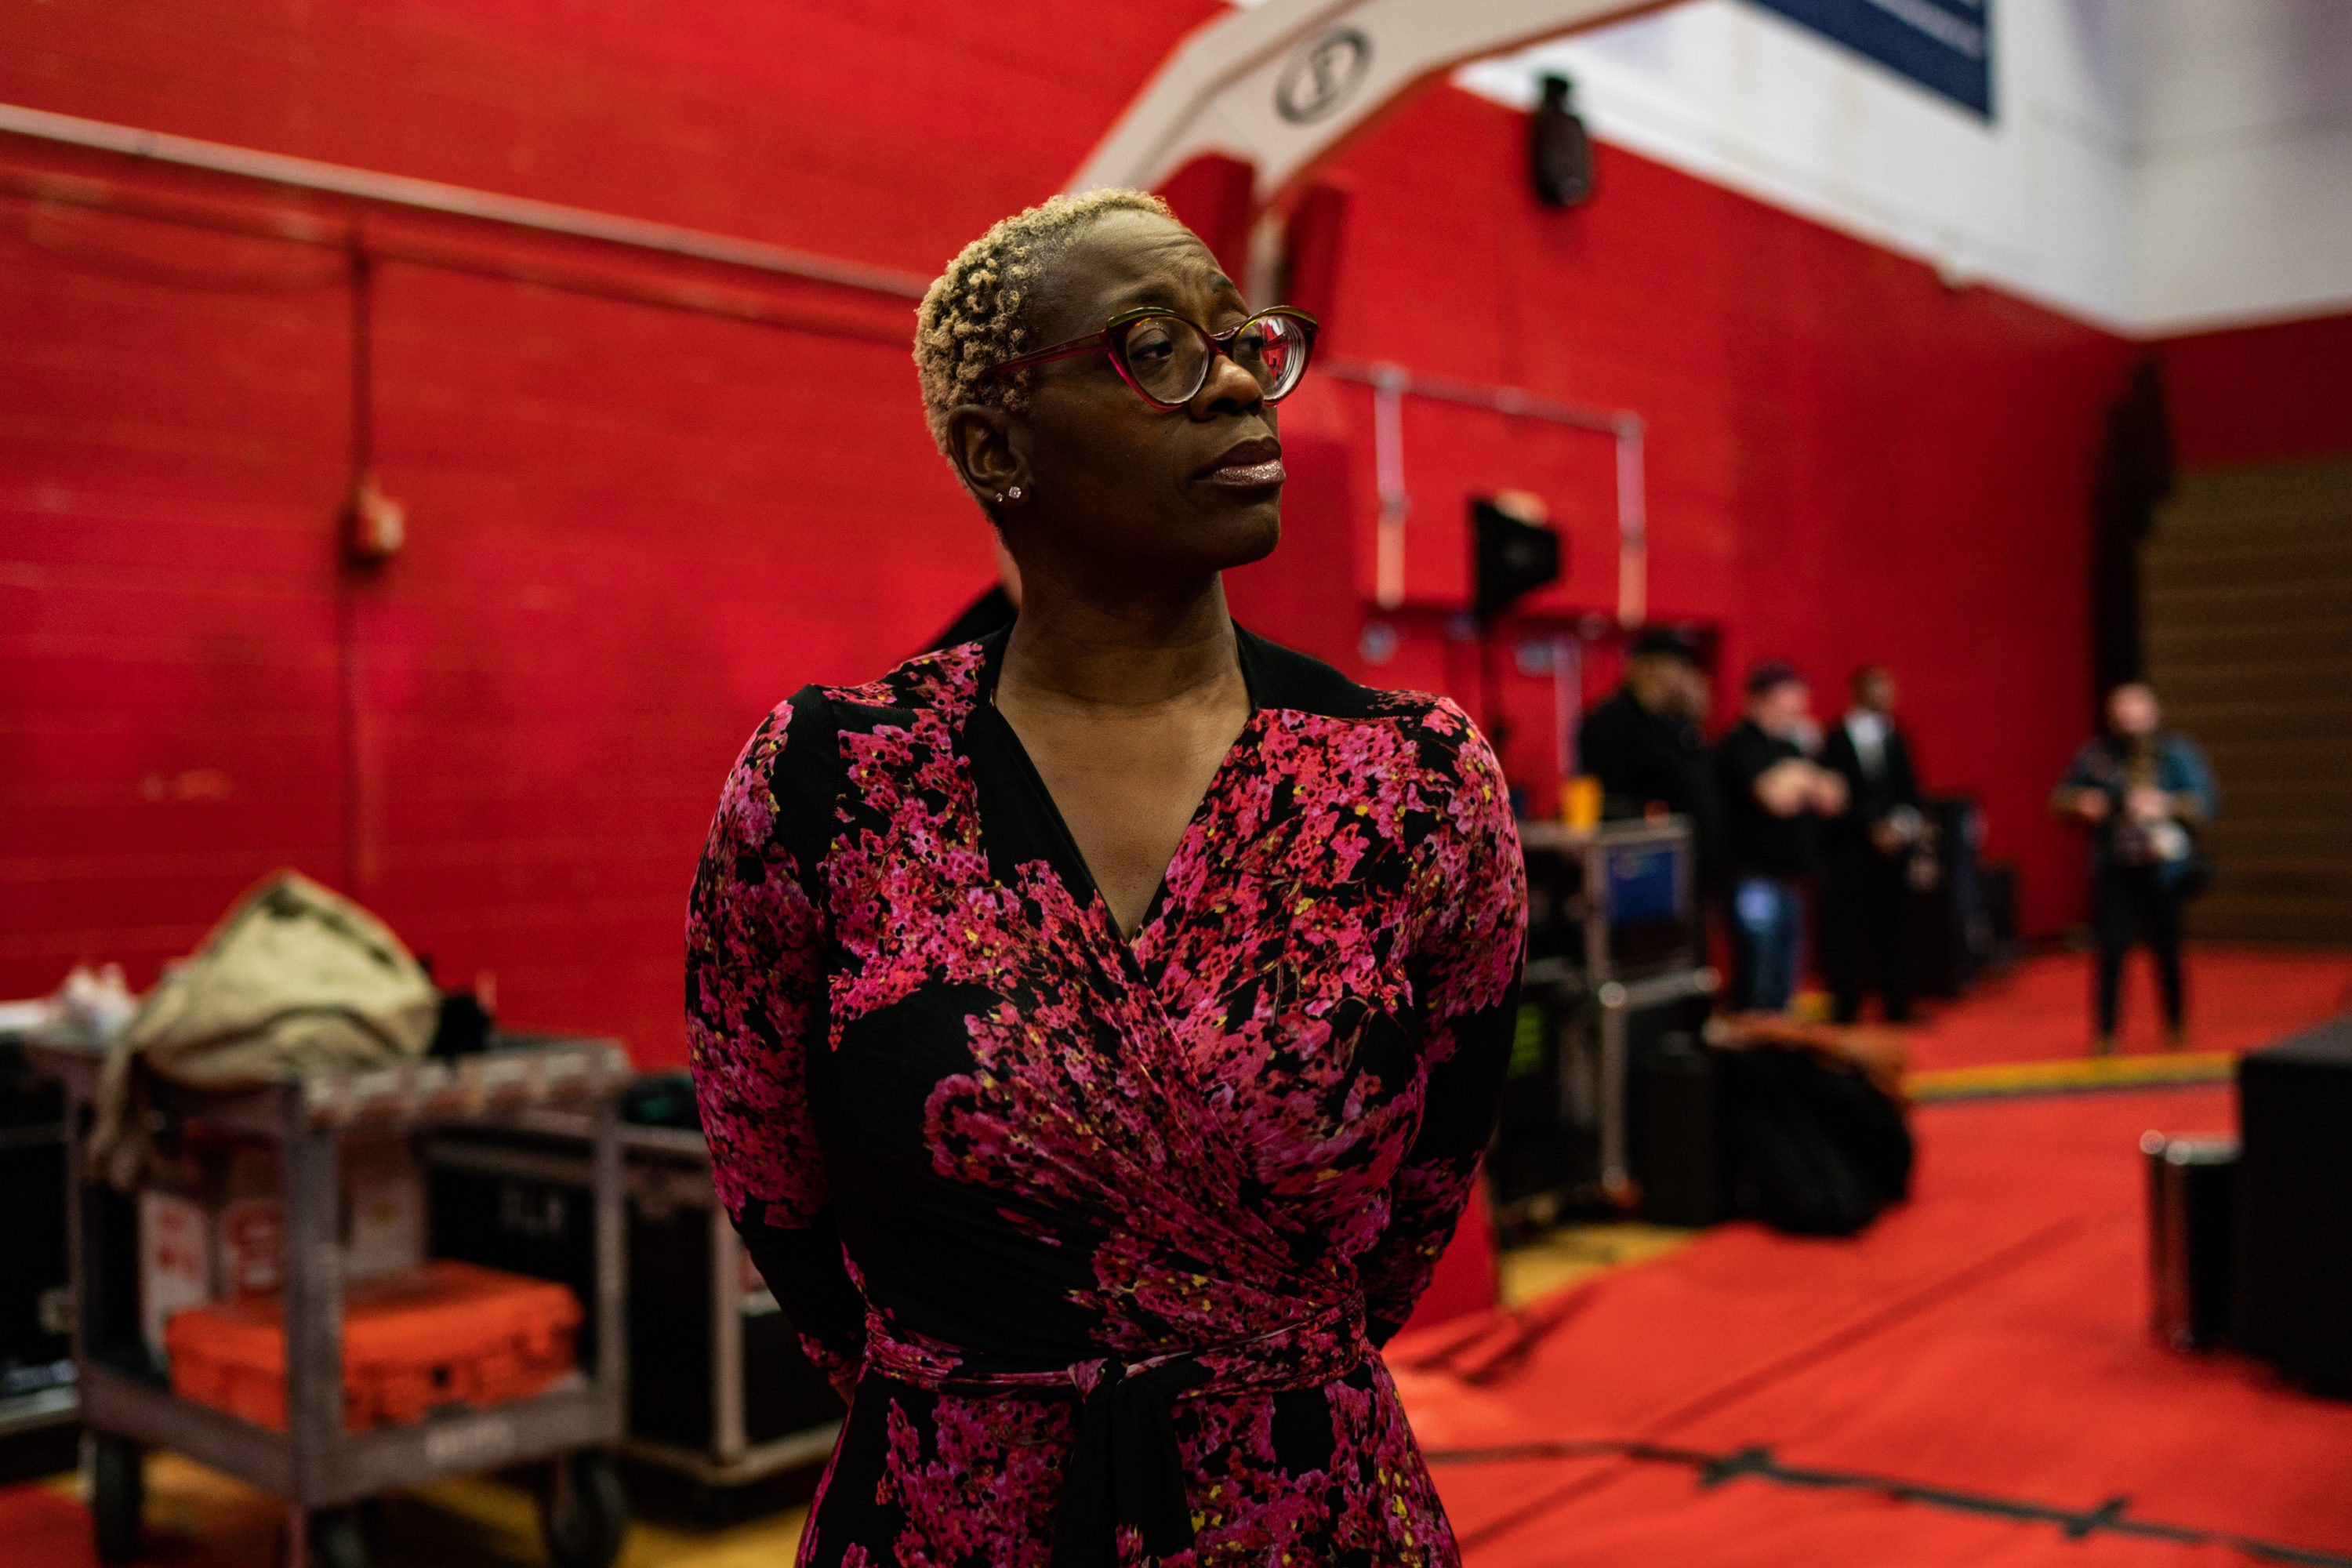 Nina Turner Wants to Be the Squad's Nick Naylor - The Bulwark